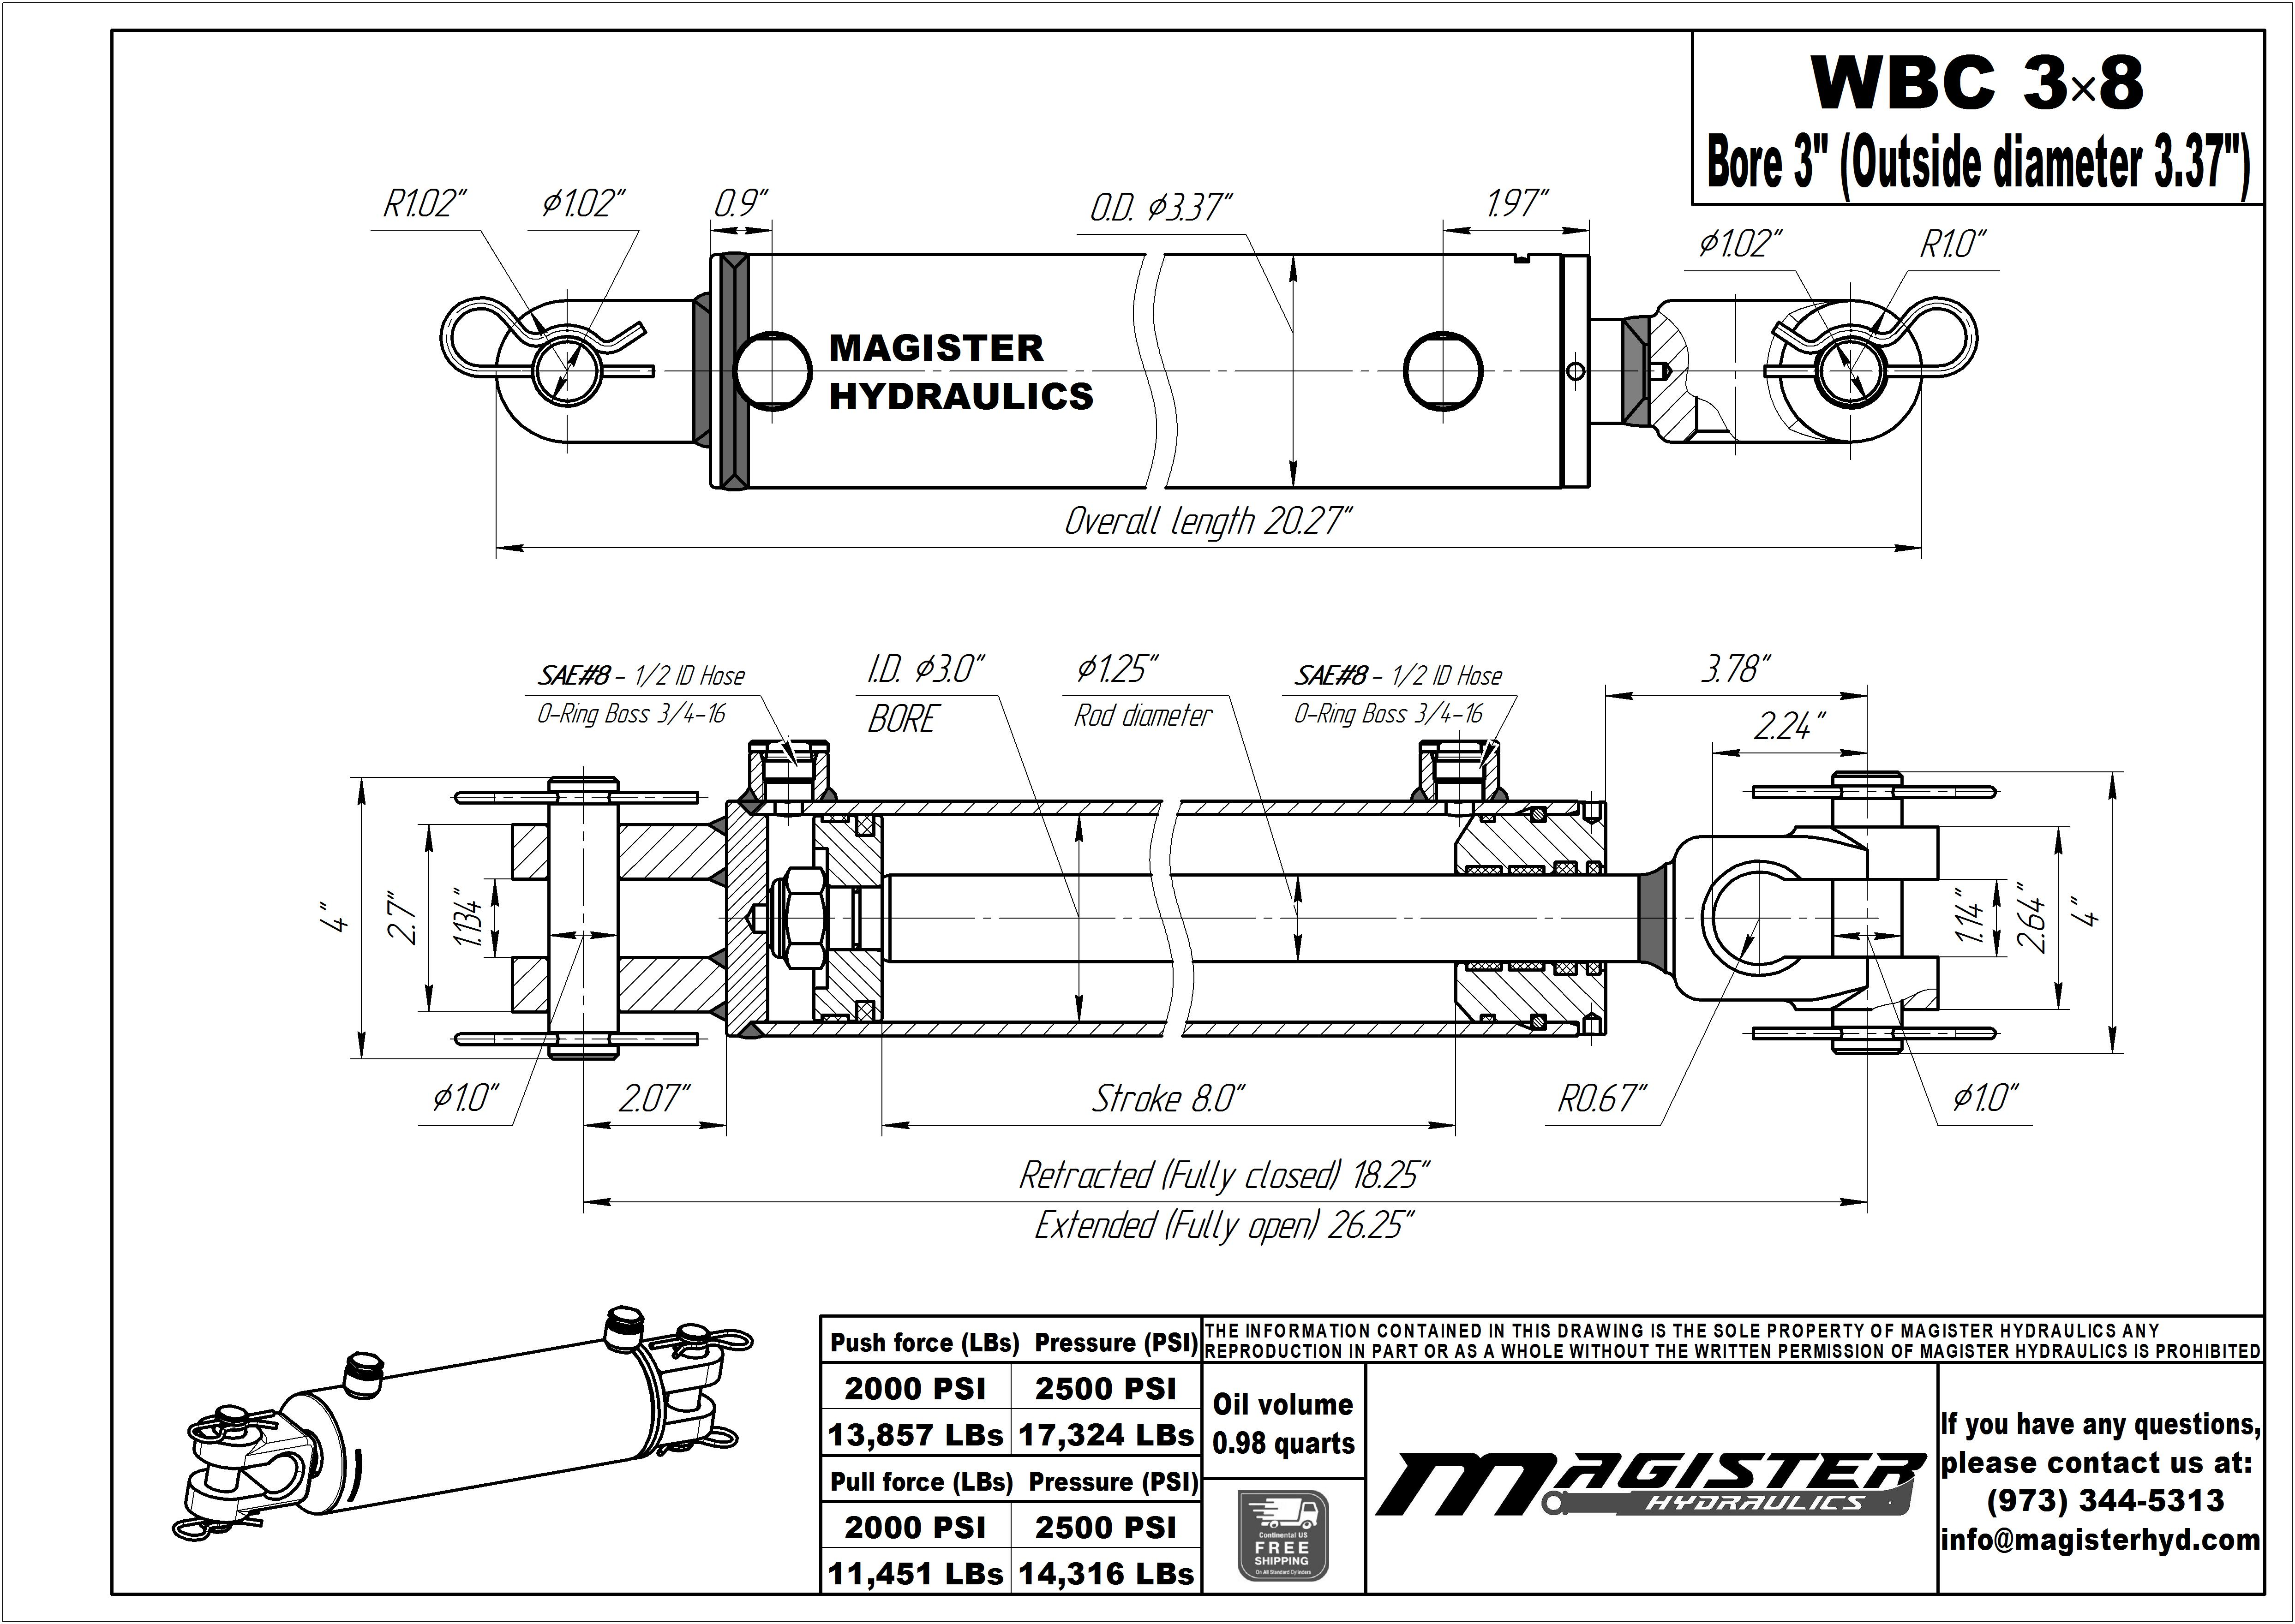 3 bore x 8 stroke hydraulic cylinder, ag clevis double acting cylinder | Magister Hydraulics